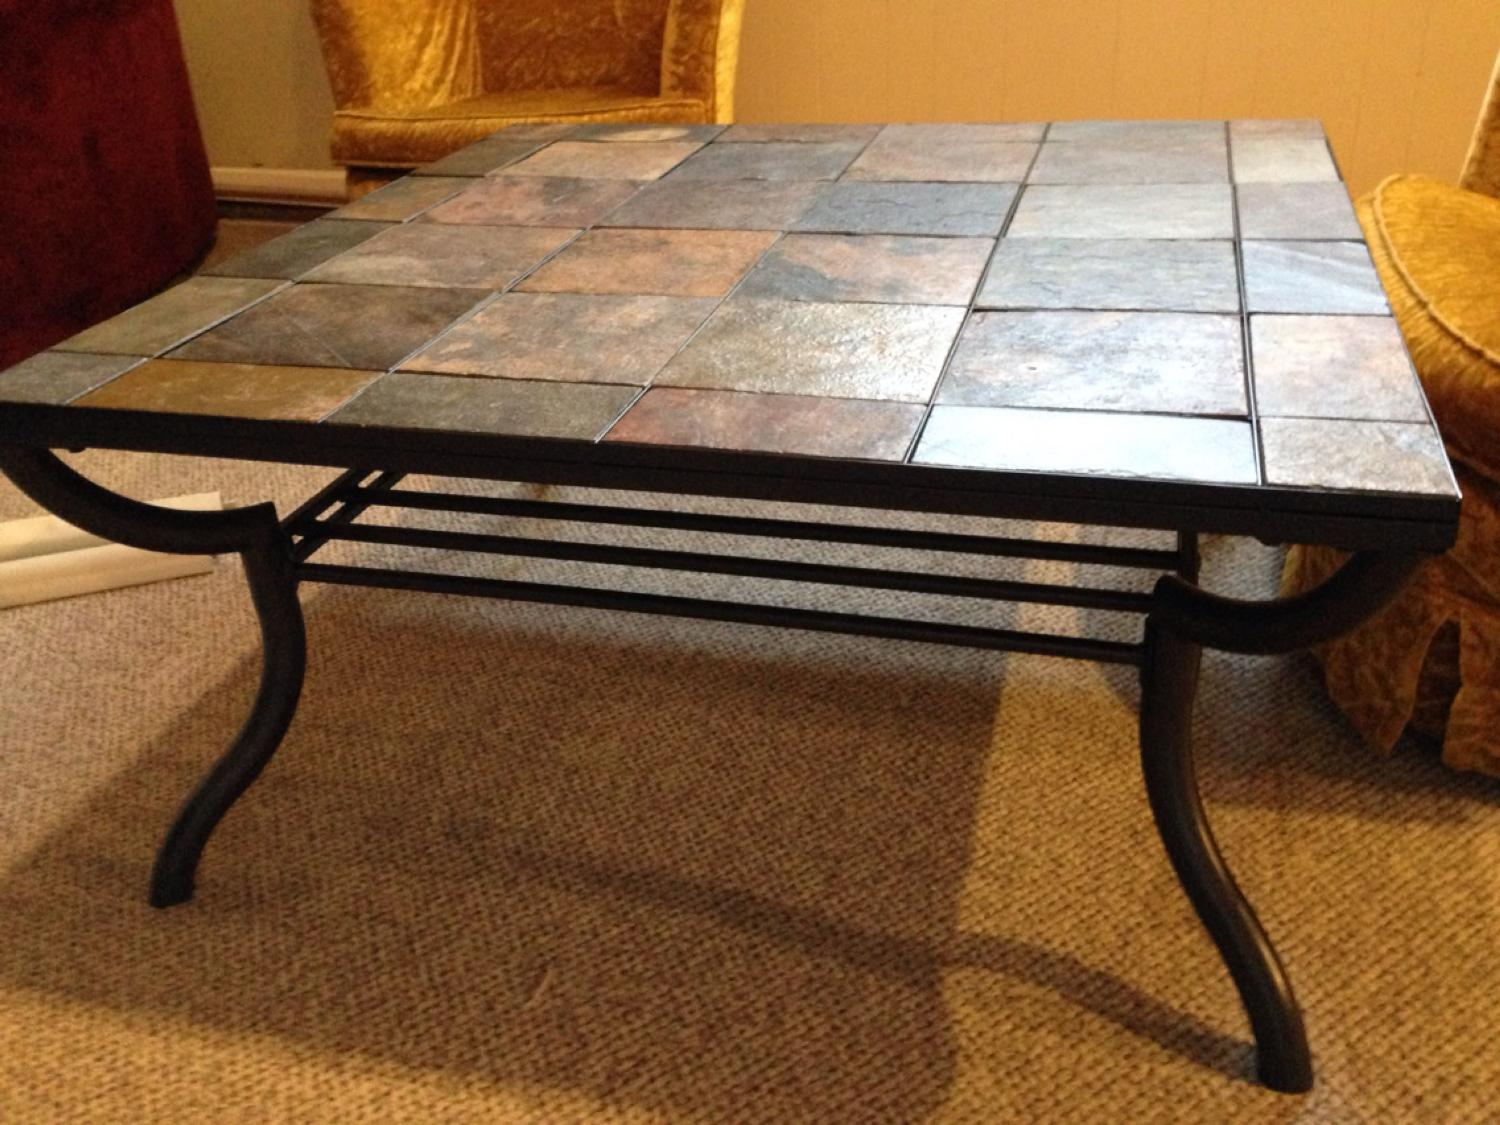 Find More Ashley Furniture Slate Coffee Table For Sale At Up To 90 Off